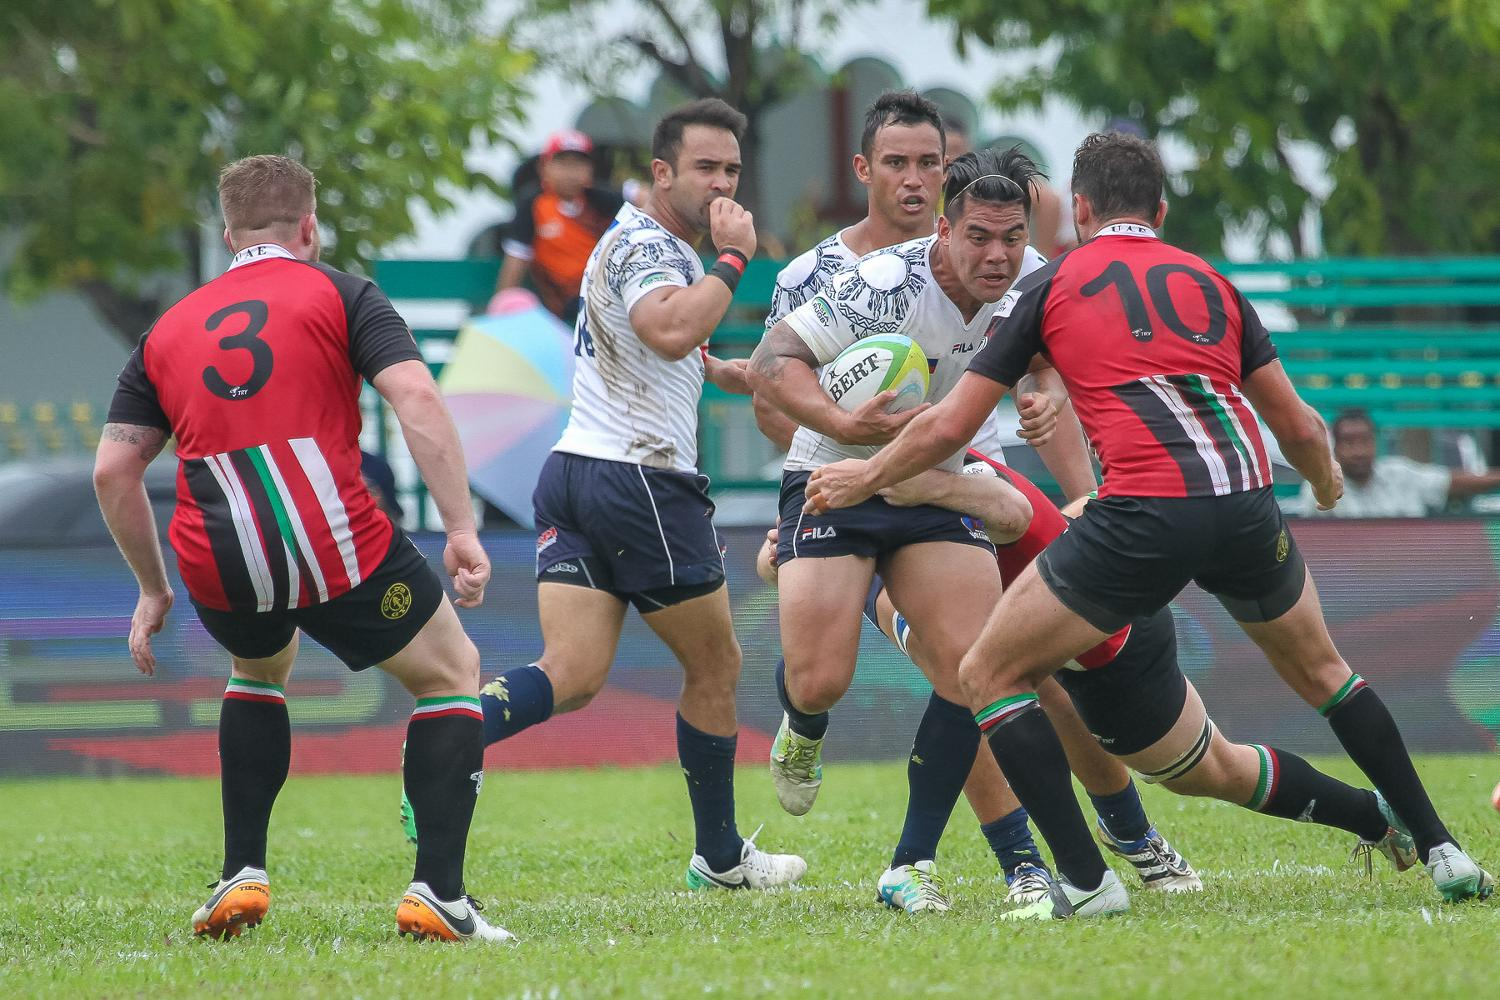 Asia Rugby Championship Division I 2017 - Philippines v UAE